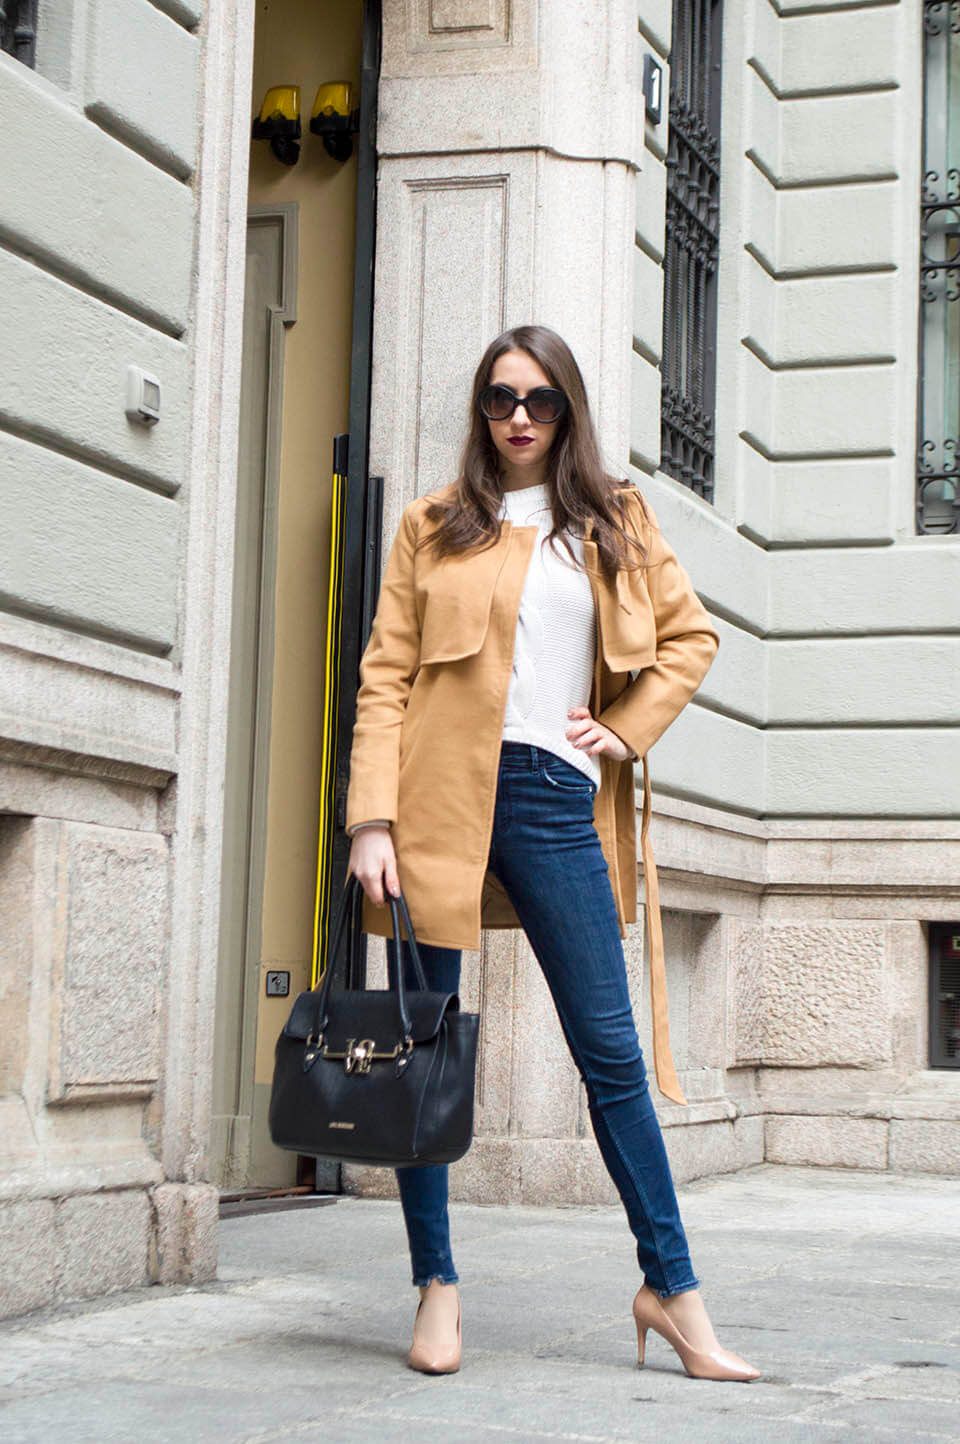 Camel coat outfit and denim pants